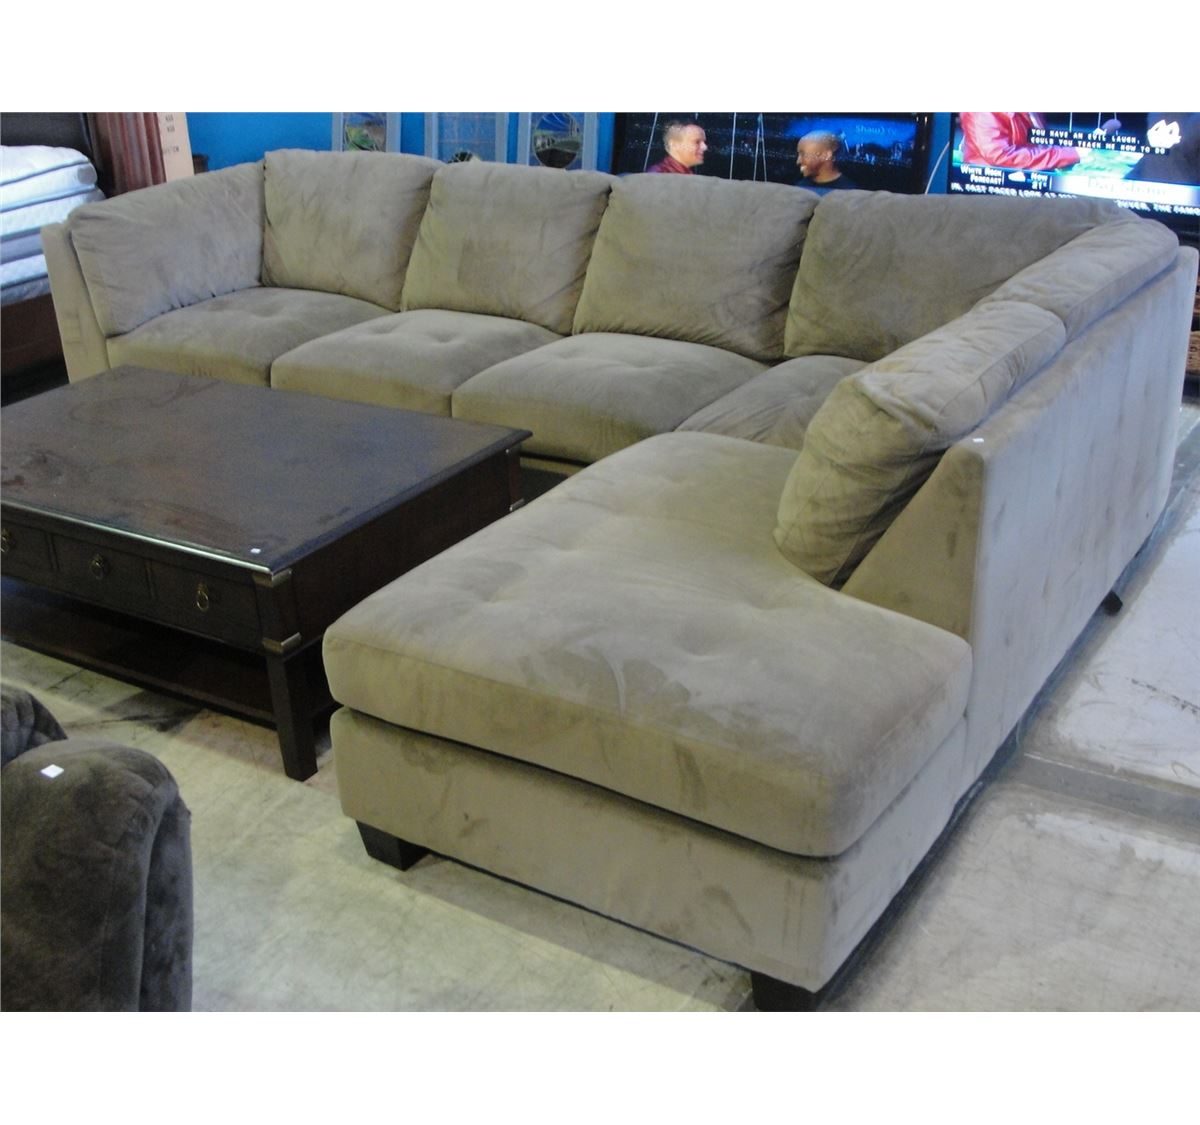 2pc micro fiber suede upholstered sectional sofa moss for Moss green sectional sofa